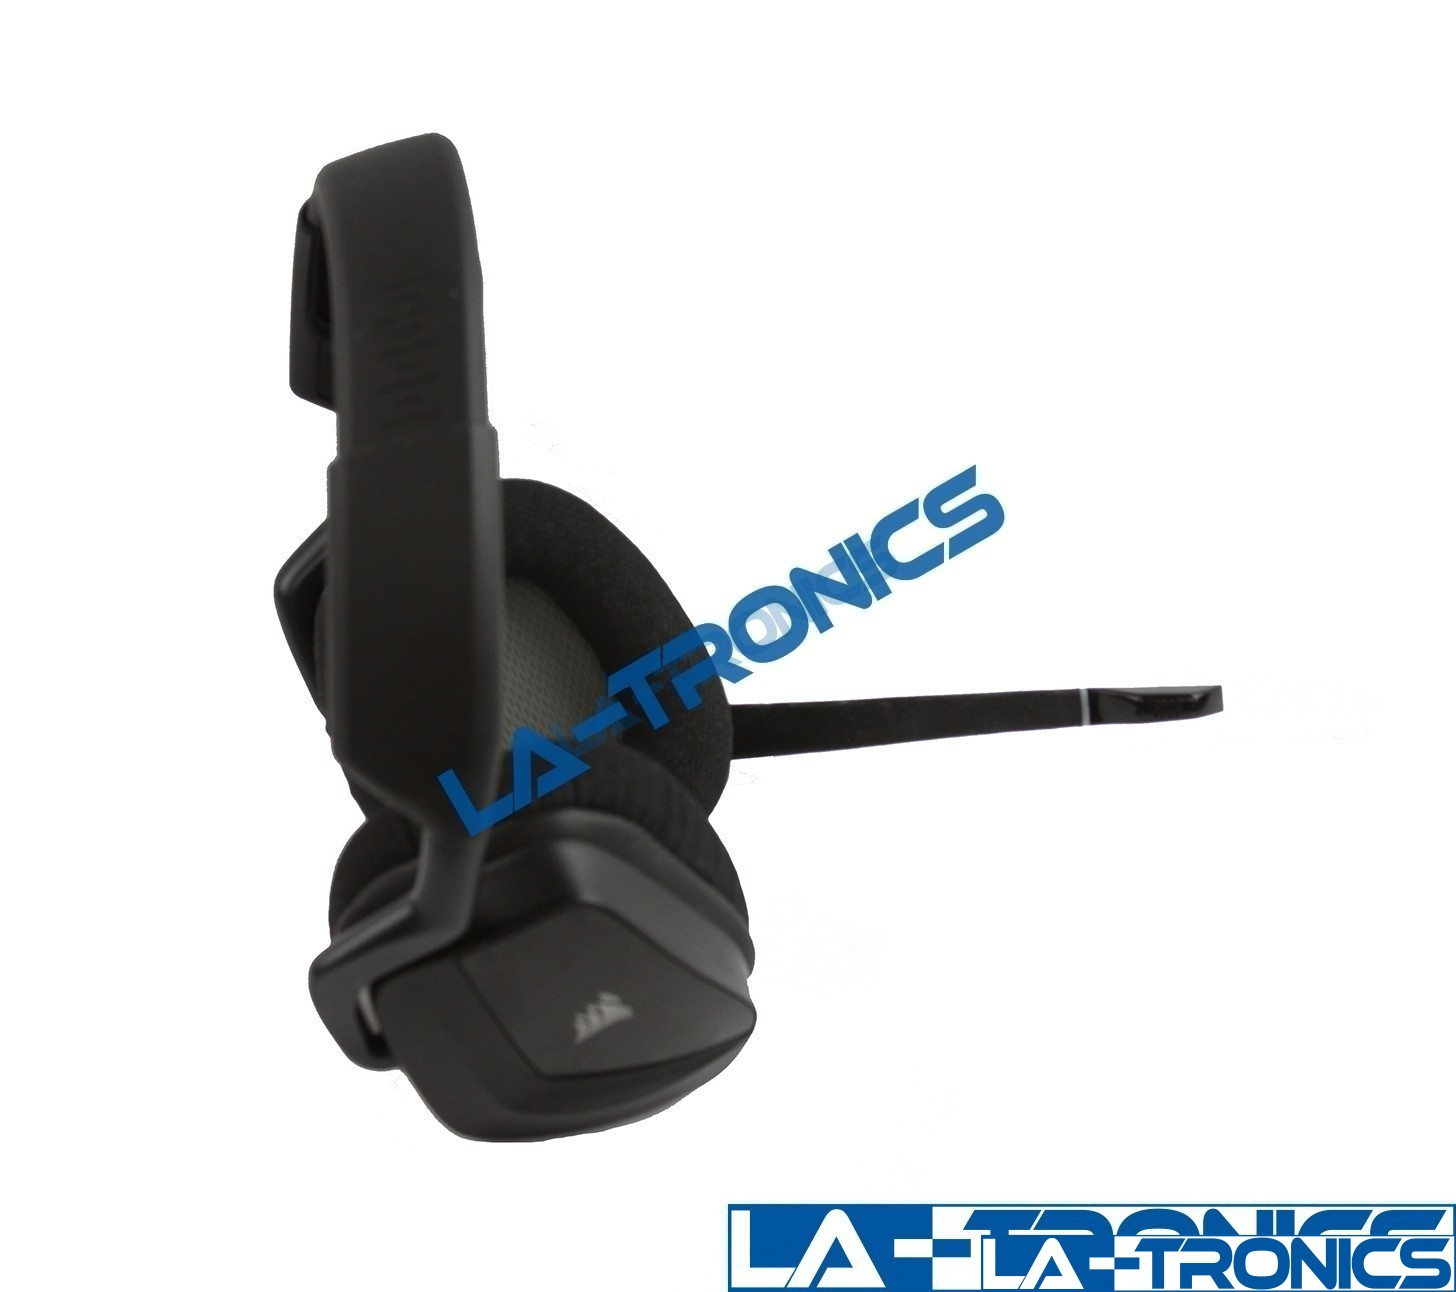 Corsair RDA0011 VOID Wireless Dolby 7.1 RGB Gaming Headset - Black